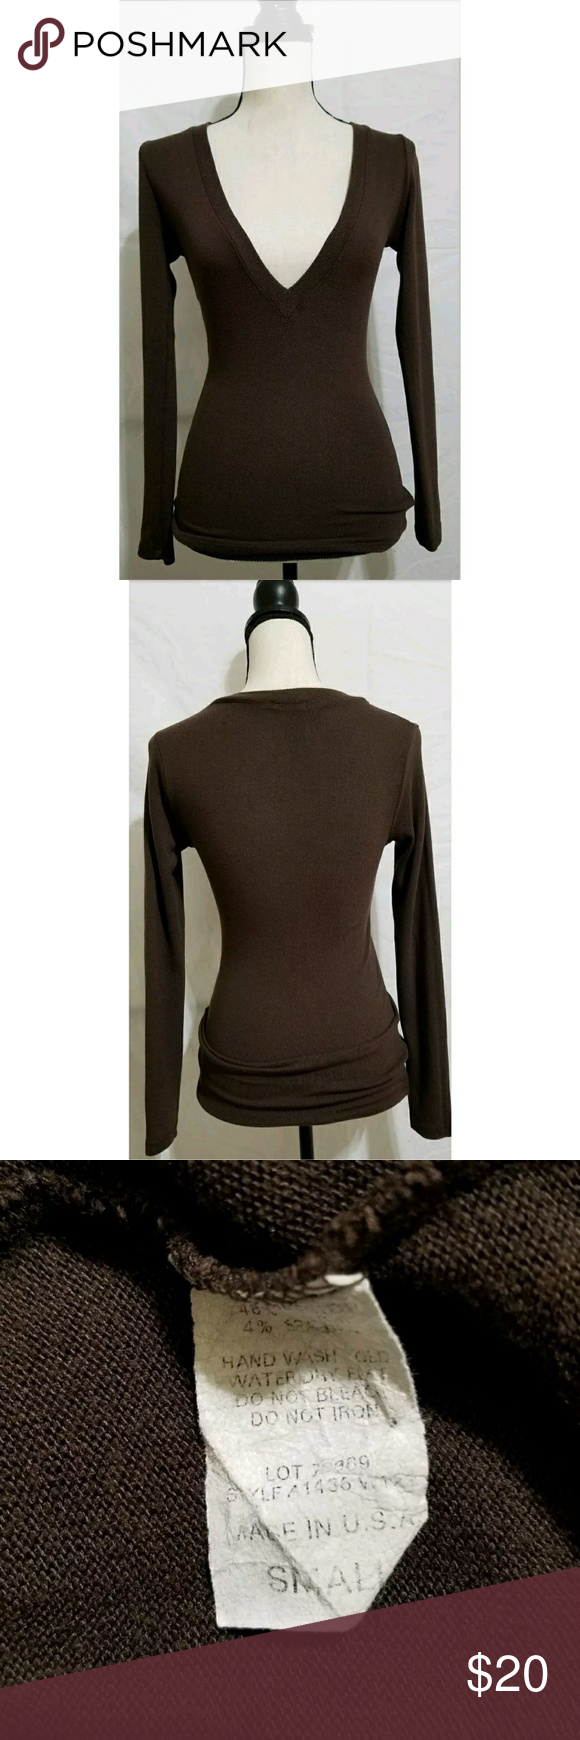 """Forever 21 Brown V-neck Lightweight Sweater S Junior's Forever 21 brown v-neck sweater, size small. It is in excellent used condition with no stains, tears, rips or holes that I can see.  48% polyester/48% rayon/4% spandex  Chest: 32"""" Armpit to armpit: 16"""" Shoulder to waist: 25.25"""" Armpit to waist: 17"""" Sleeve: 23.75""""  All items come from a smoke and pet free home. Forever 21 Sweaters V-Necks"""